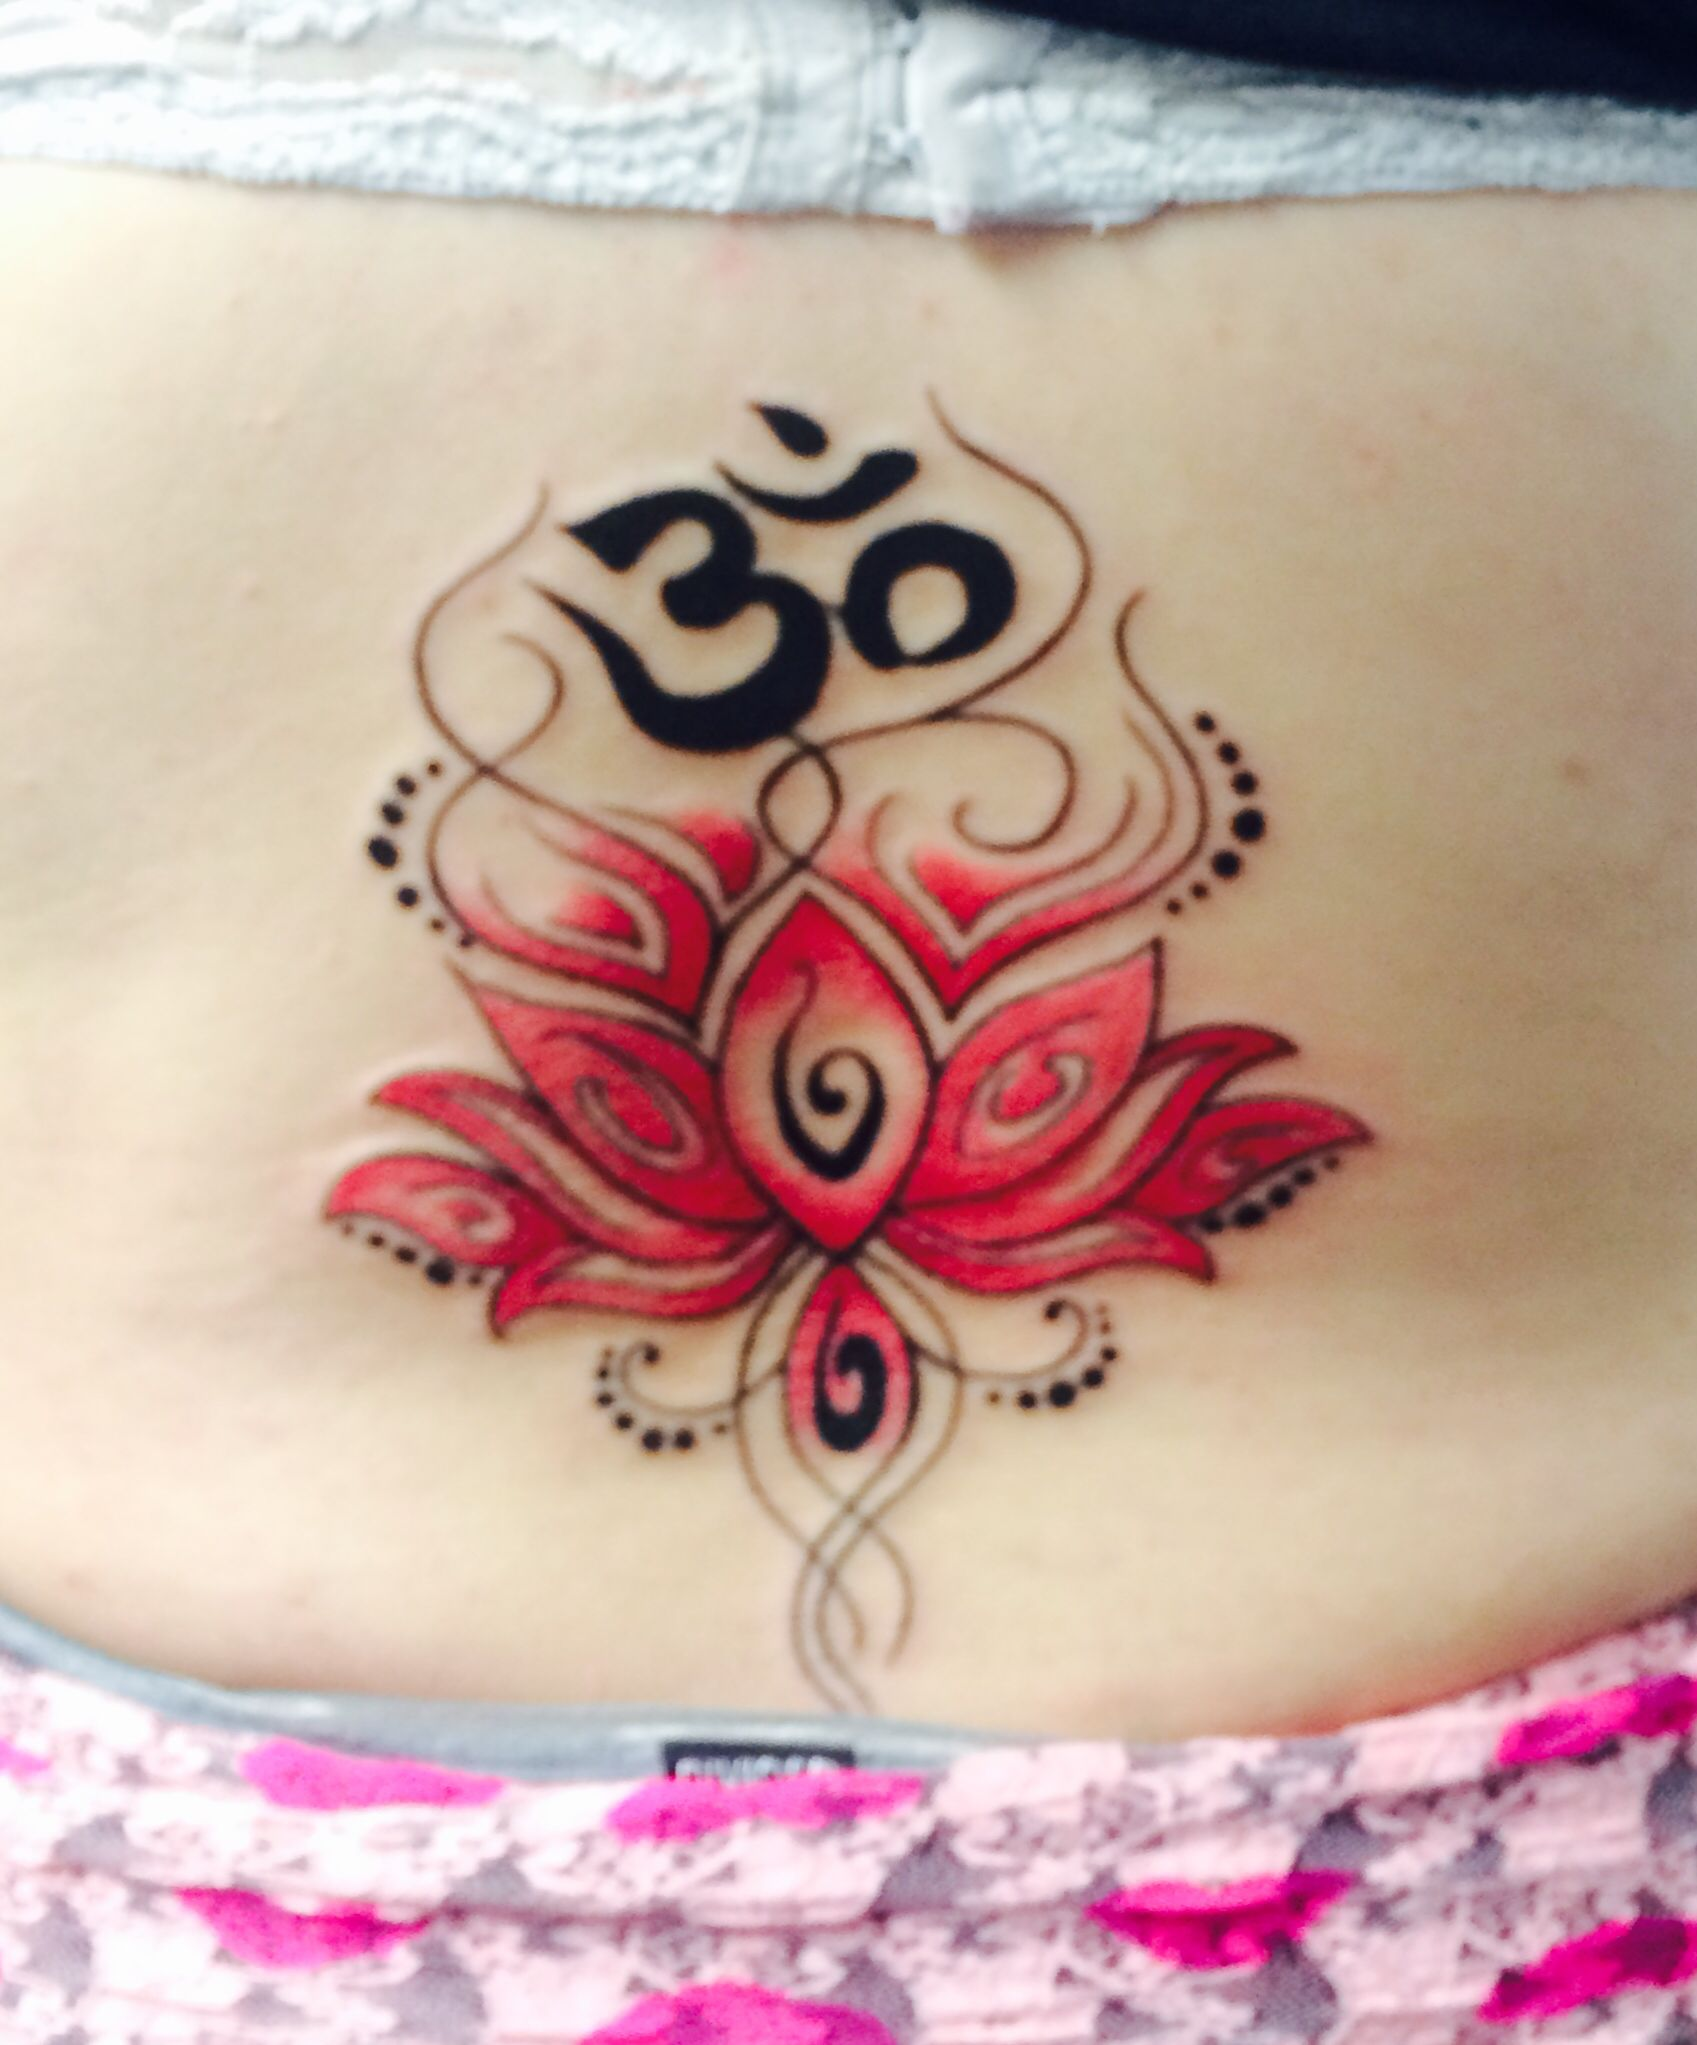 Pink lotus flower lower back tattoo ohm at the top represents pink lotus flower lower back tattoo ohm at the top represents harmony and peace with izmirmasajfo